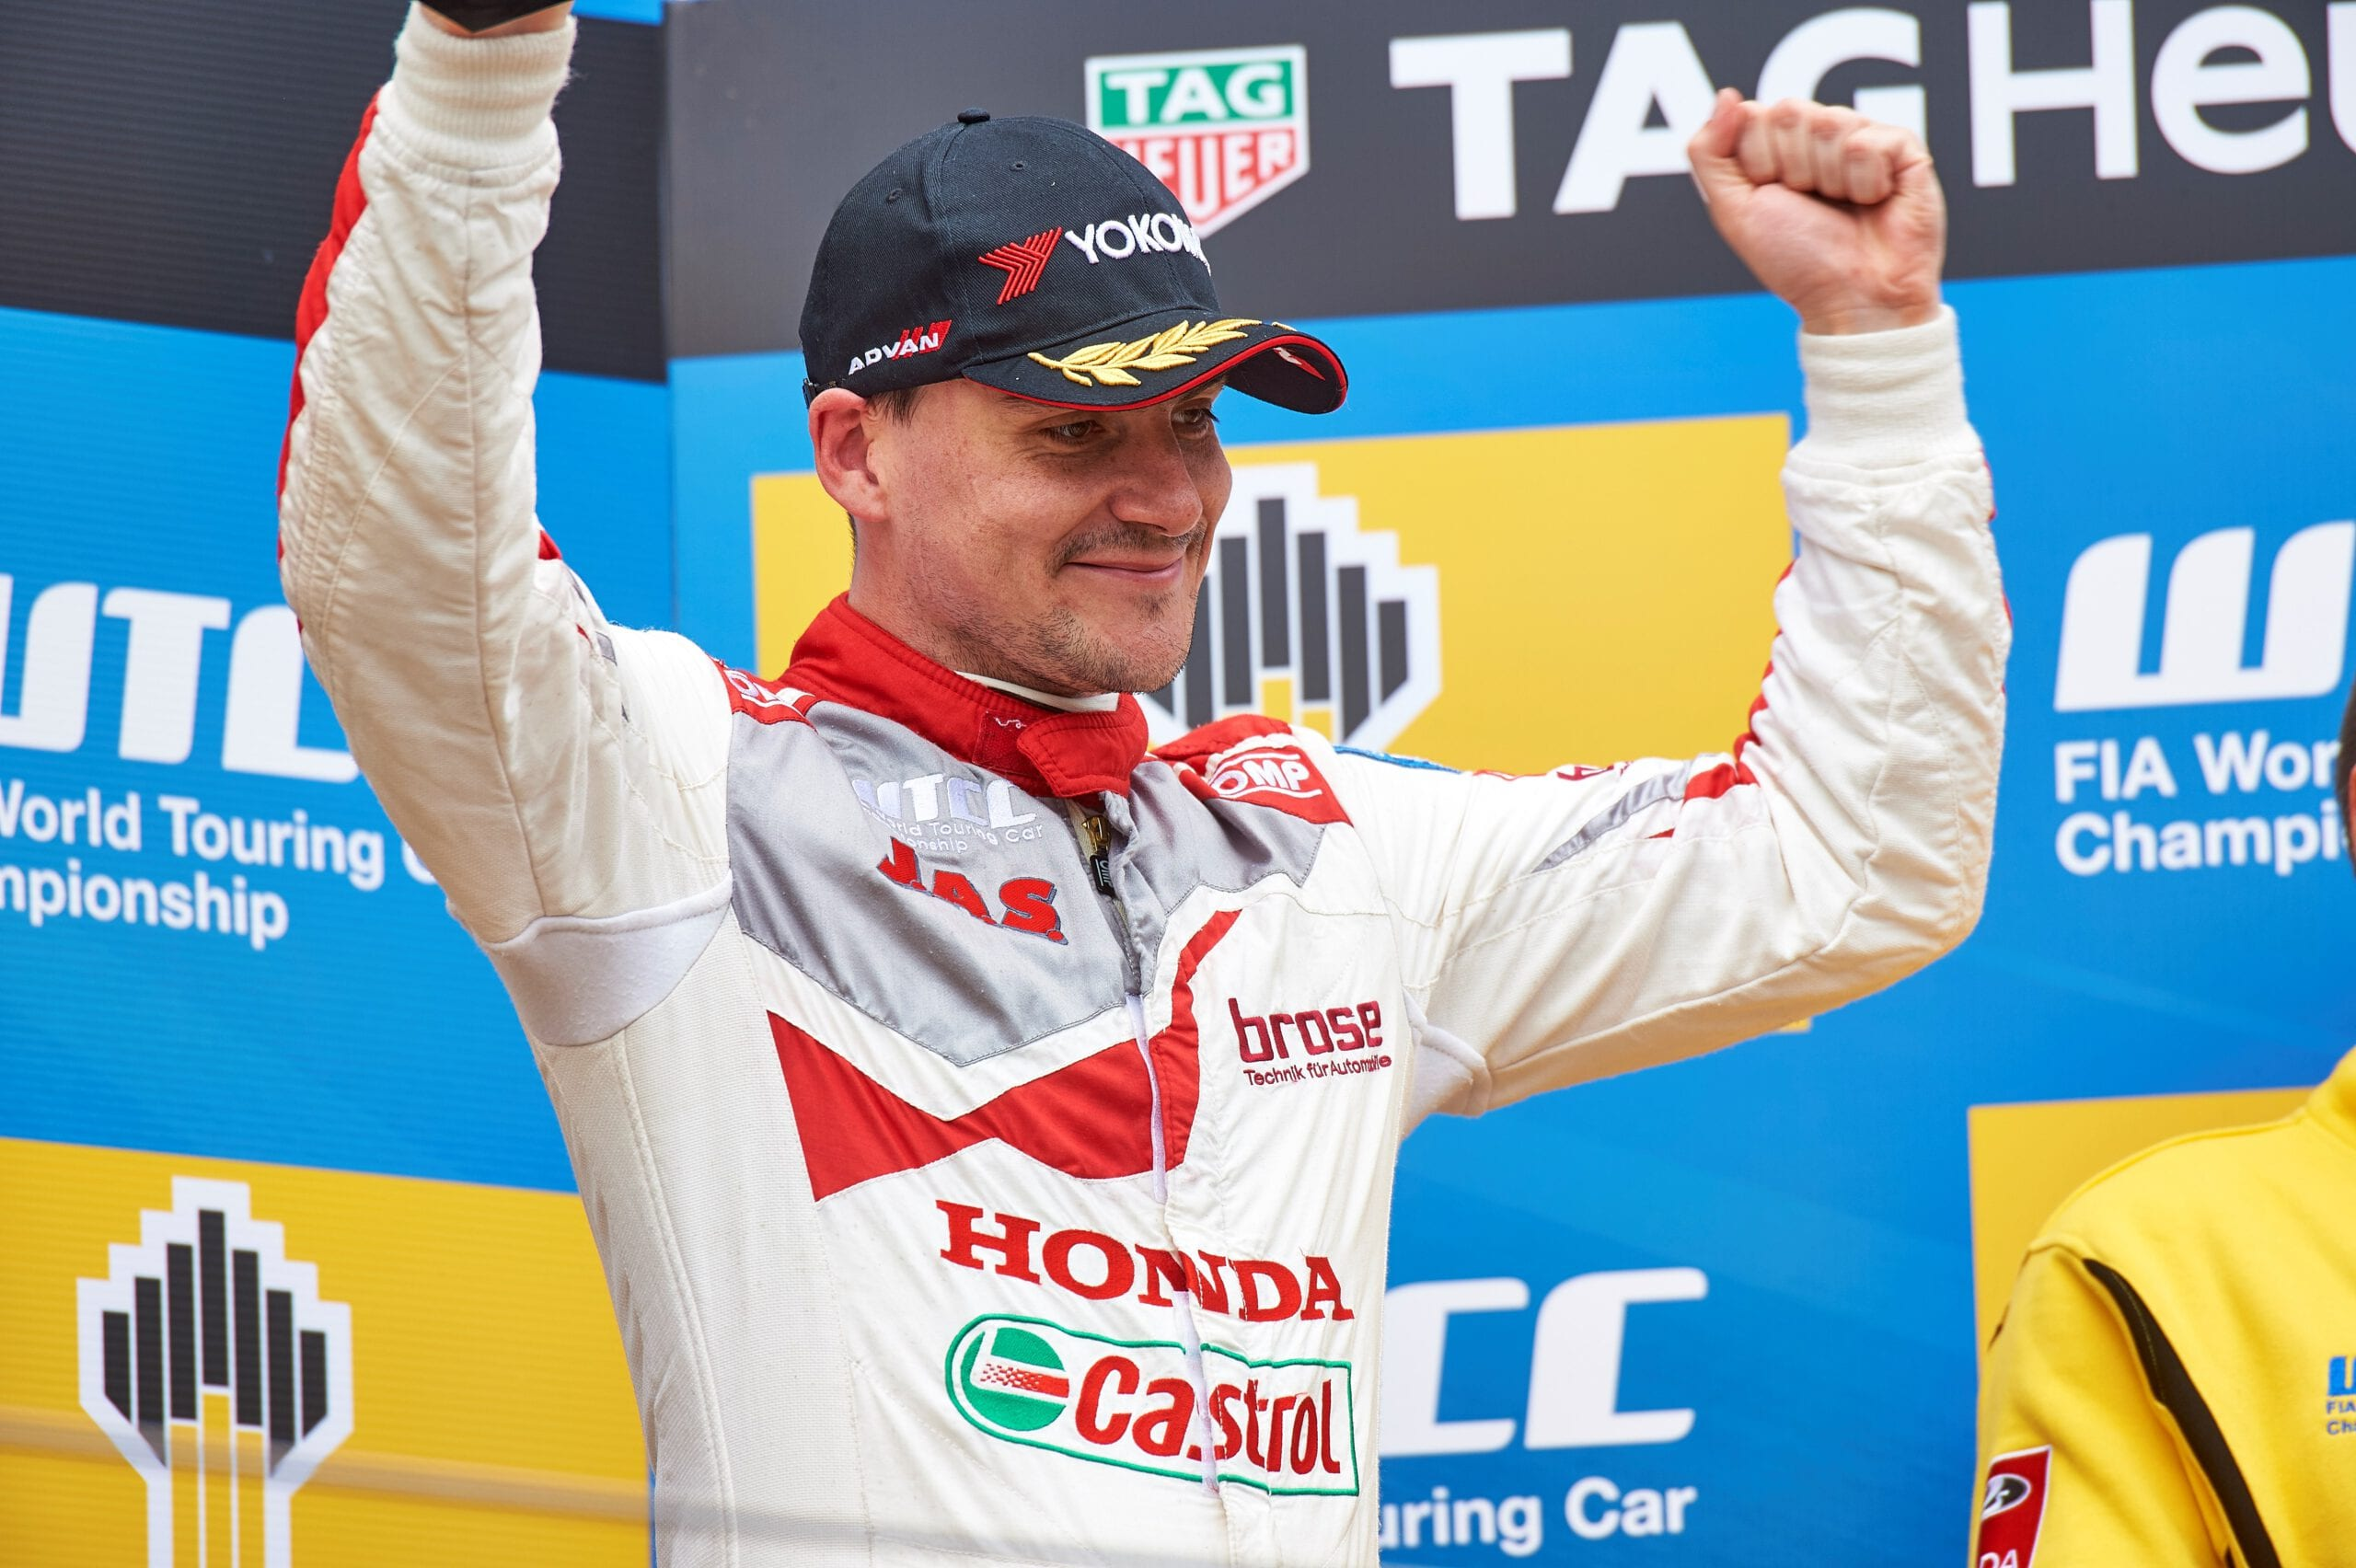 WTCC Rd 6 - Moscow, Russia